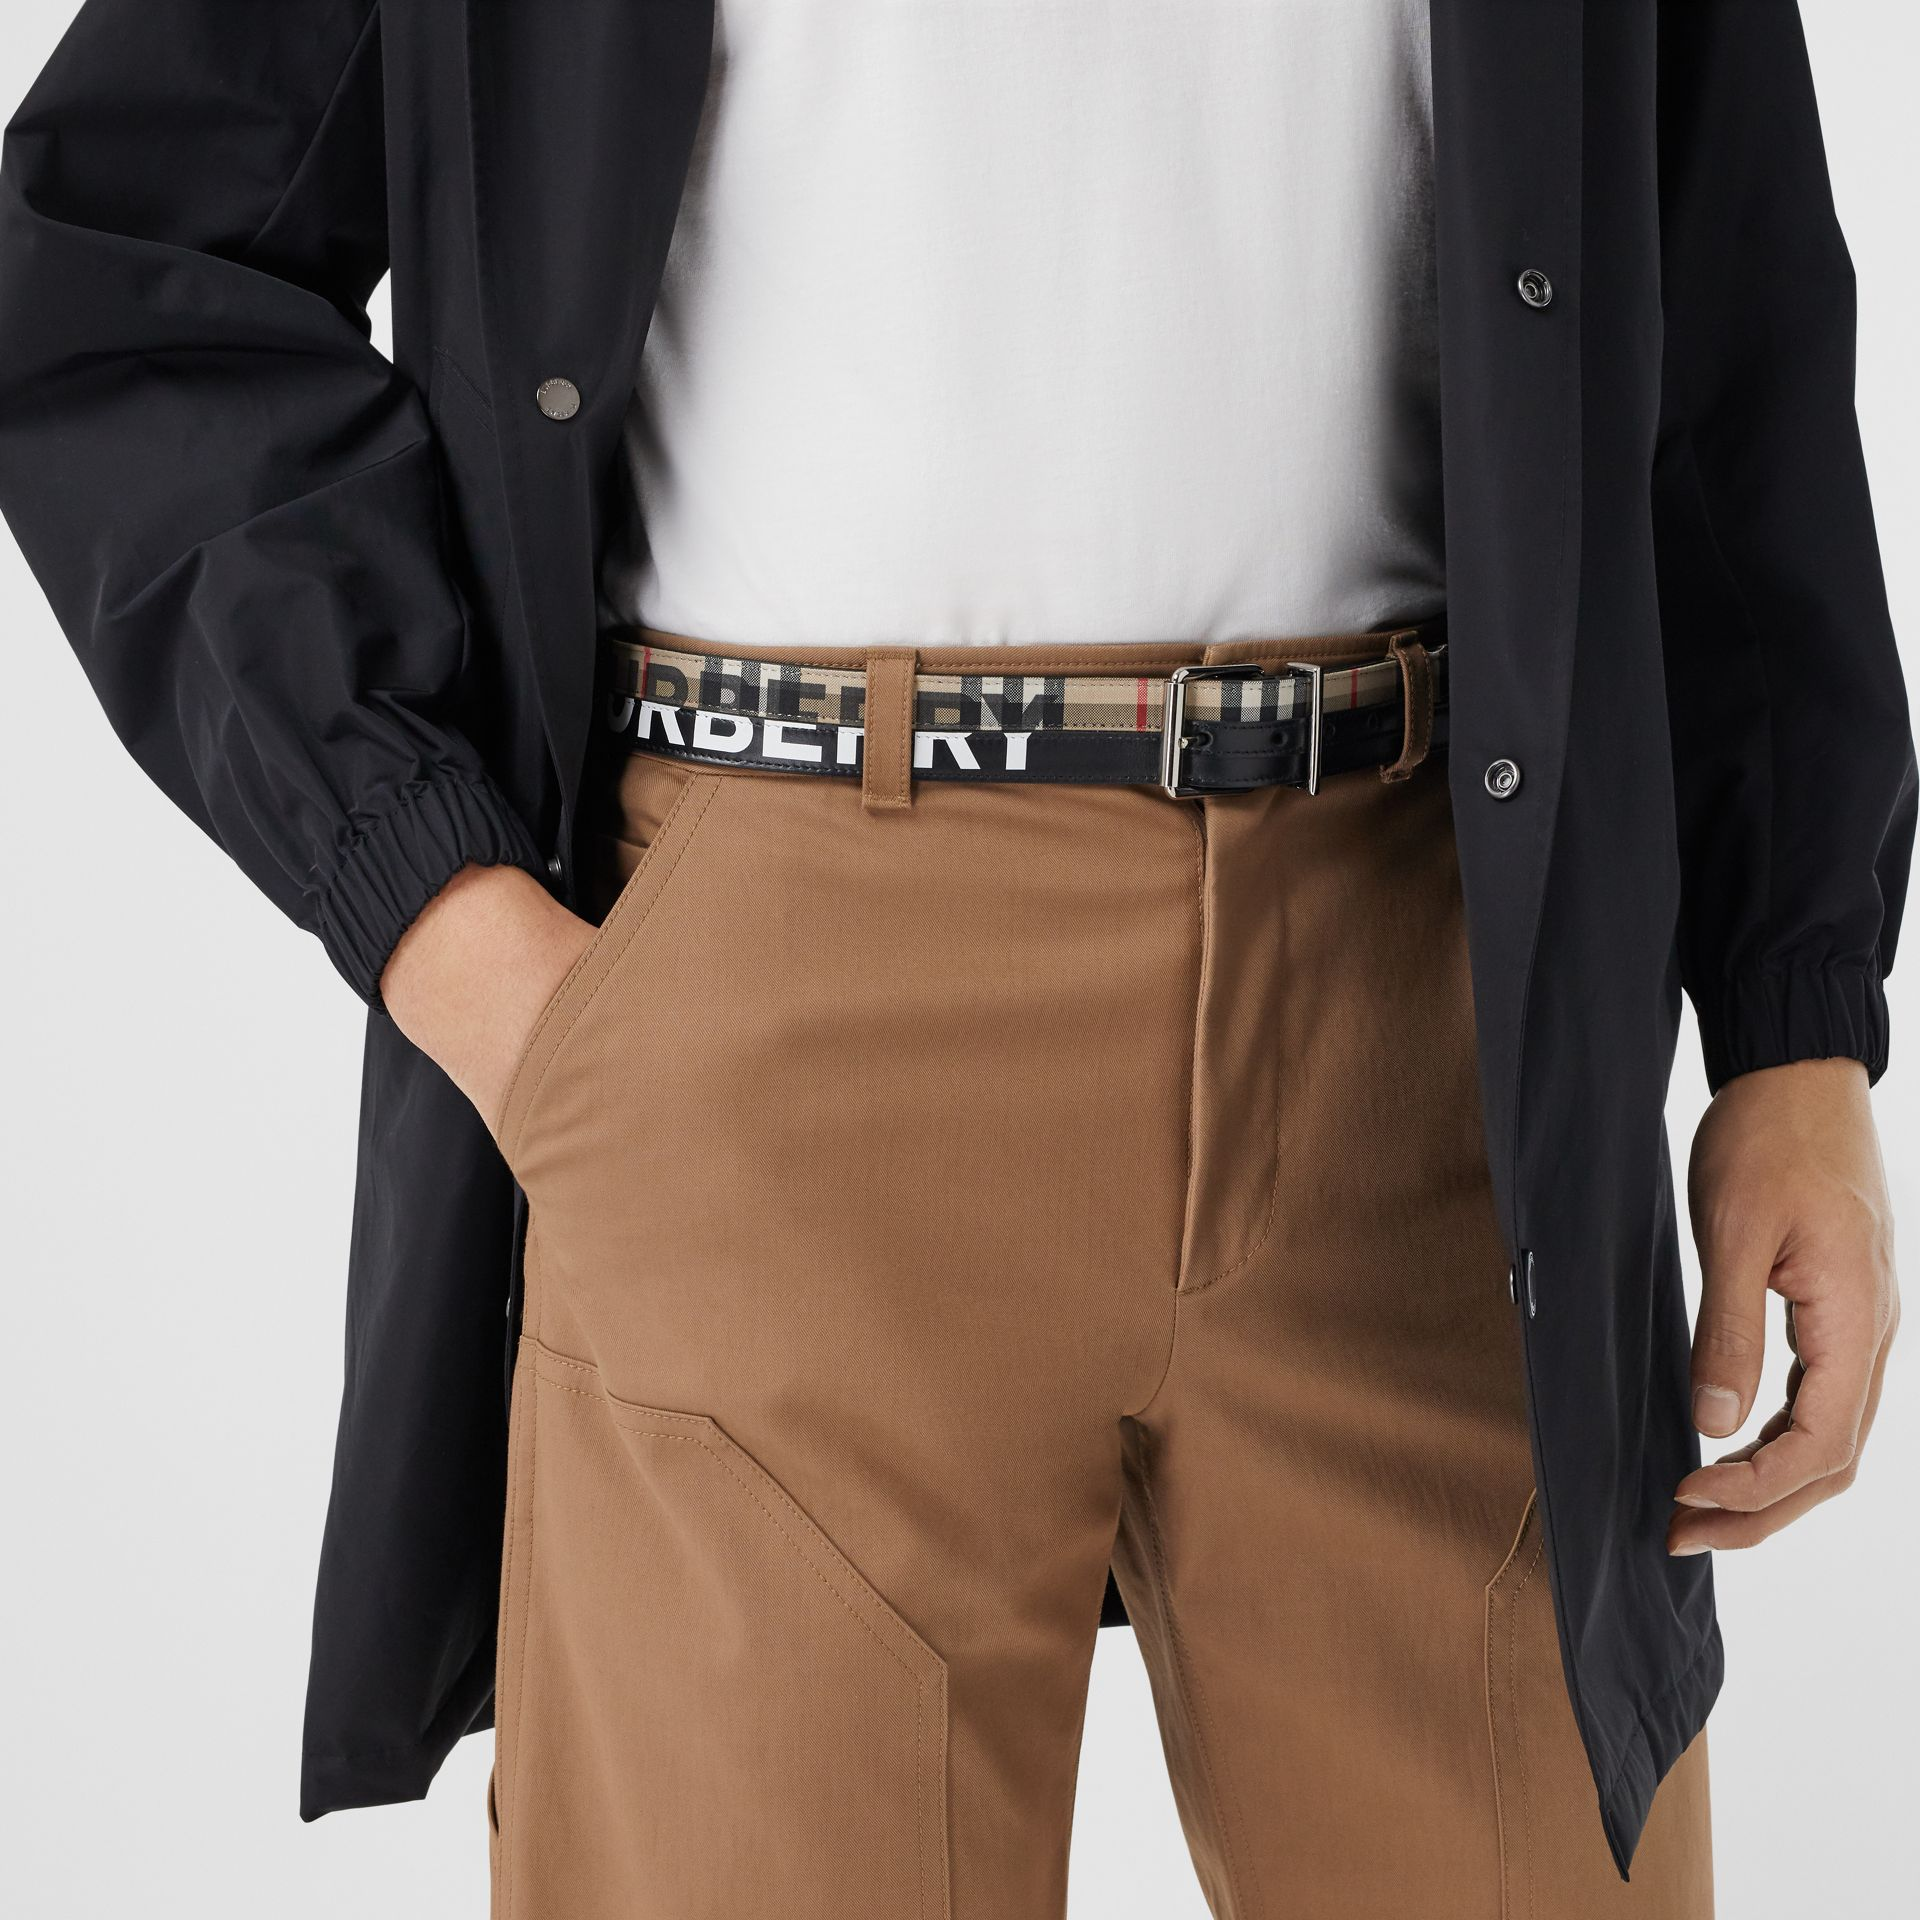 Logo Print Vintage Check and Leather Belt in Archive Beige/black - Men | Burberry Hong Kong S.A.R - gallery image 2